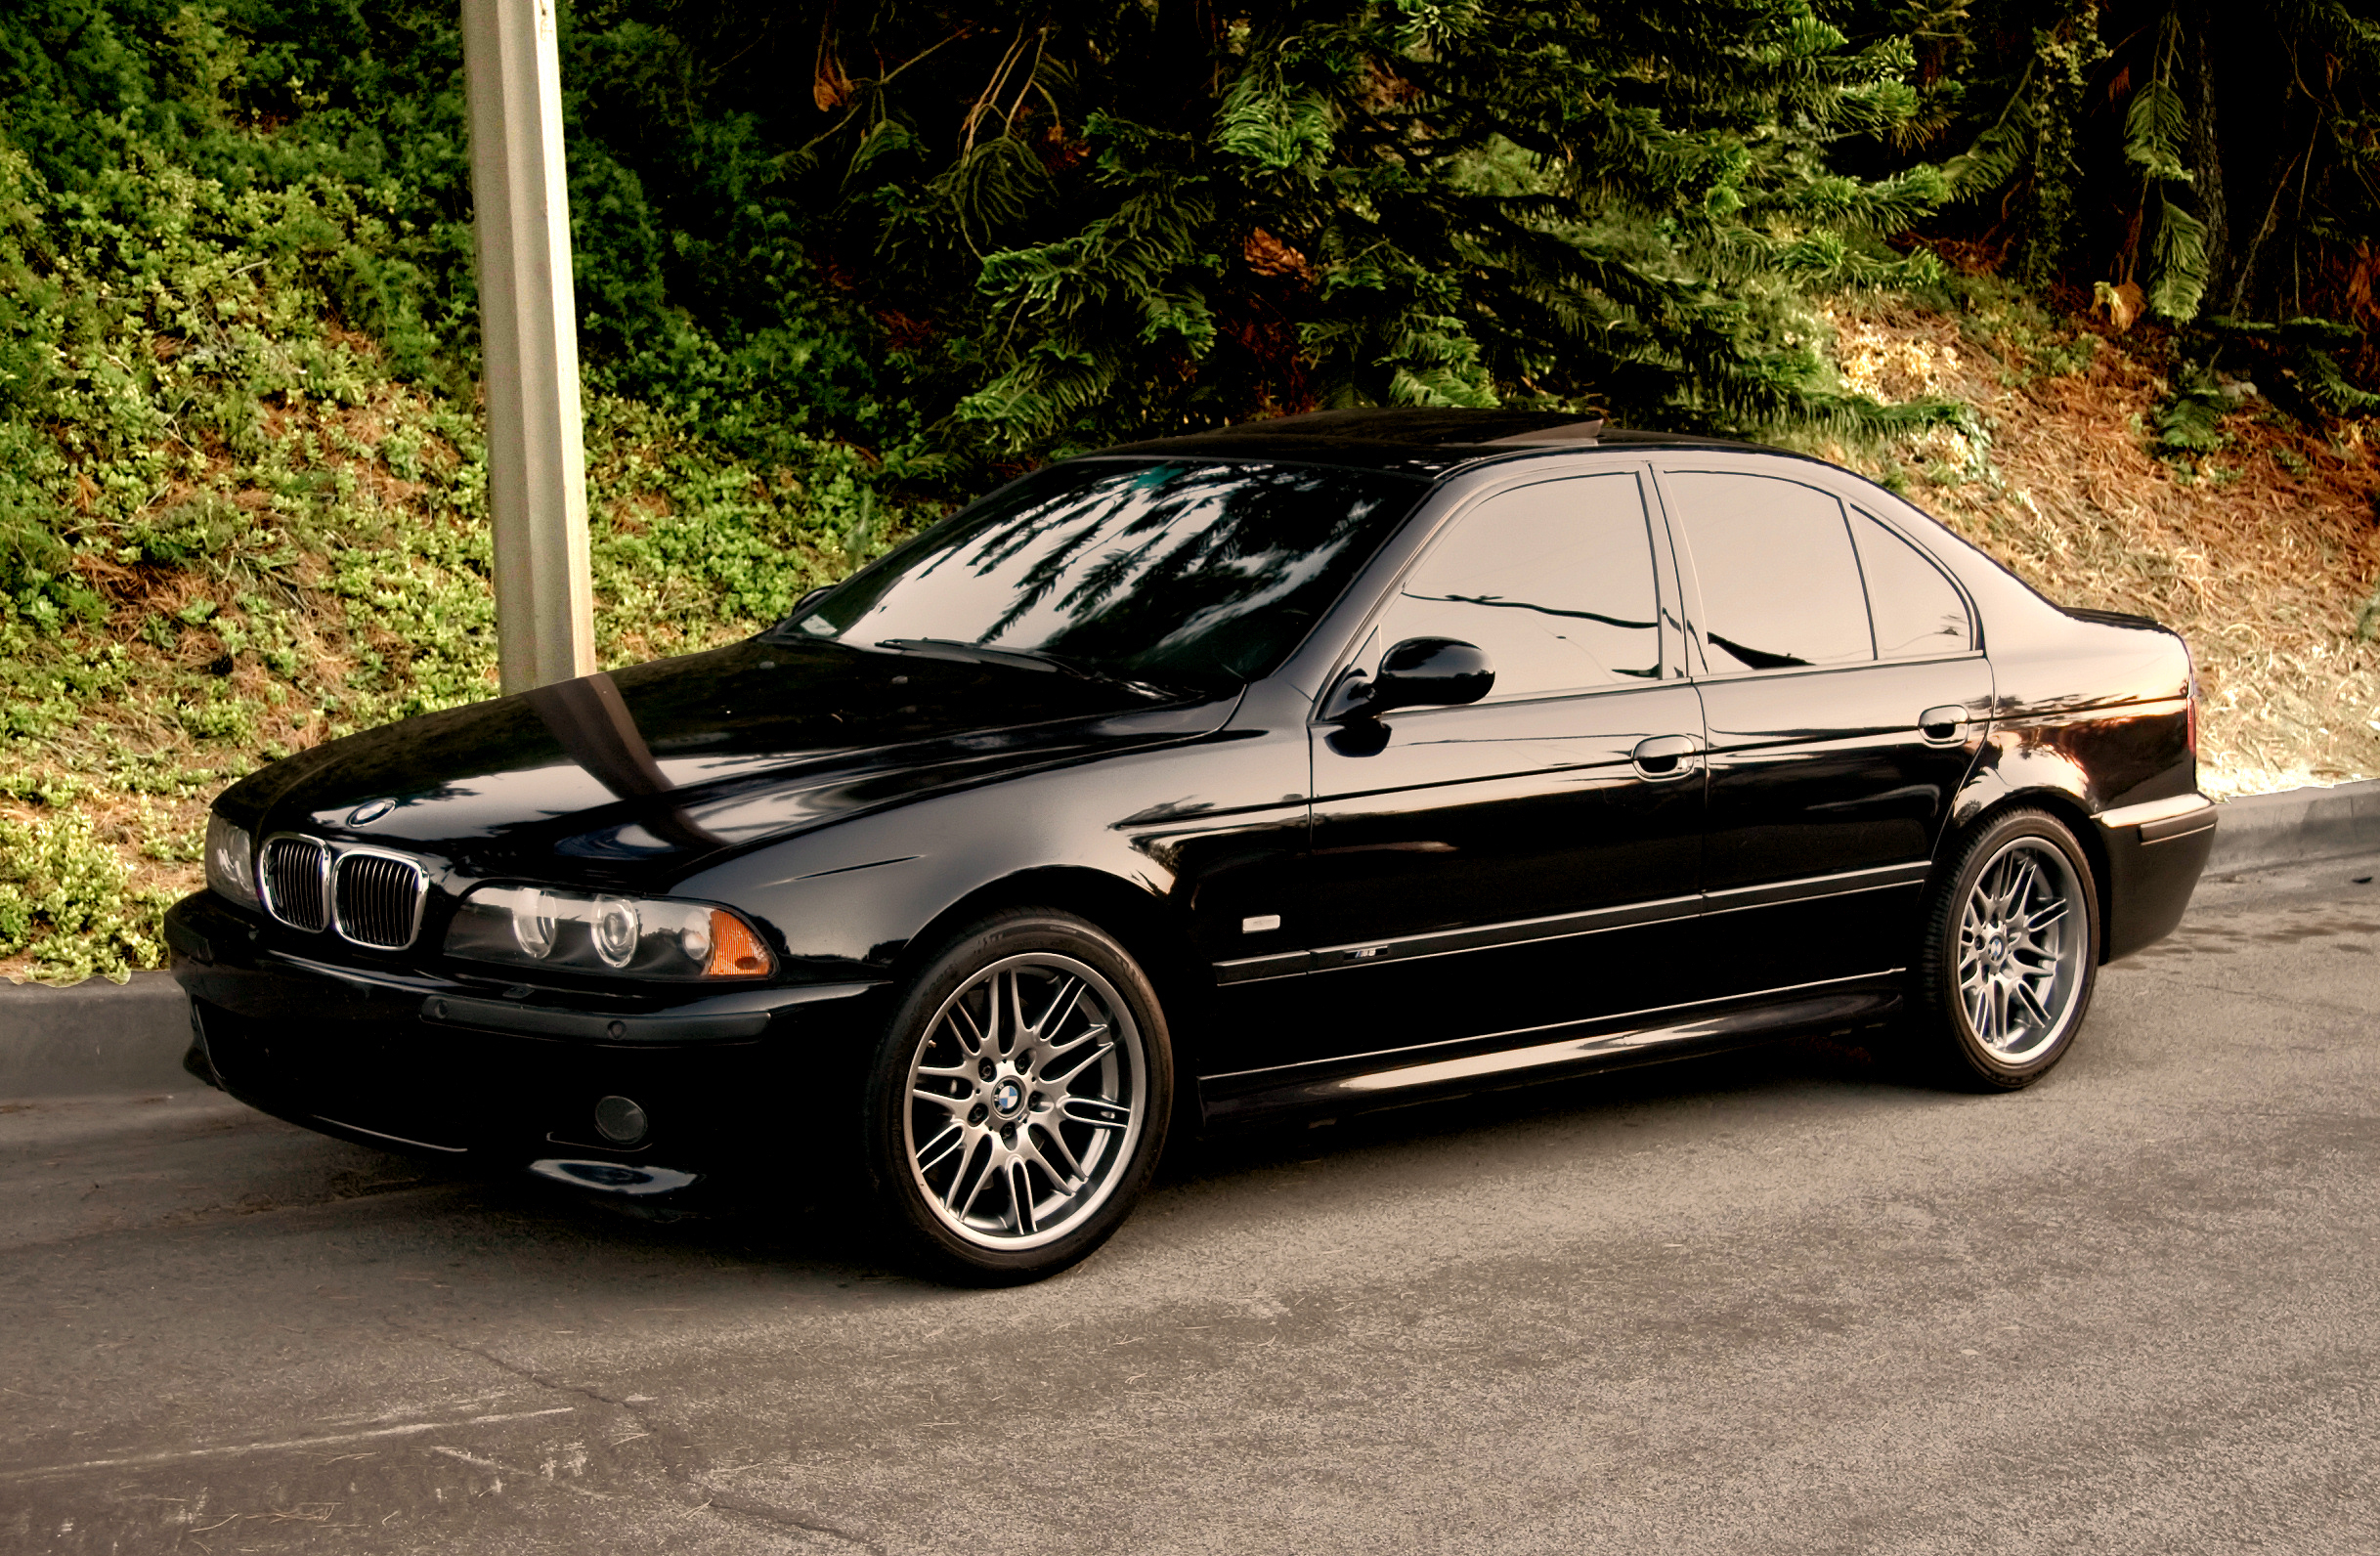 Bmw e39 wallpapers images photos pictures backgrounds - Bmw e39 wallpaper ...